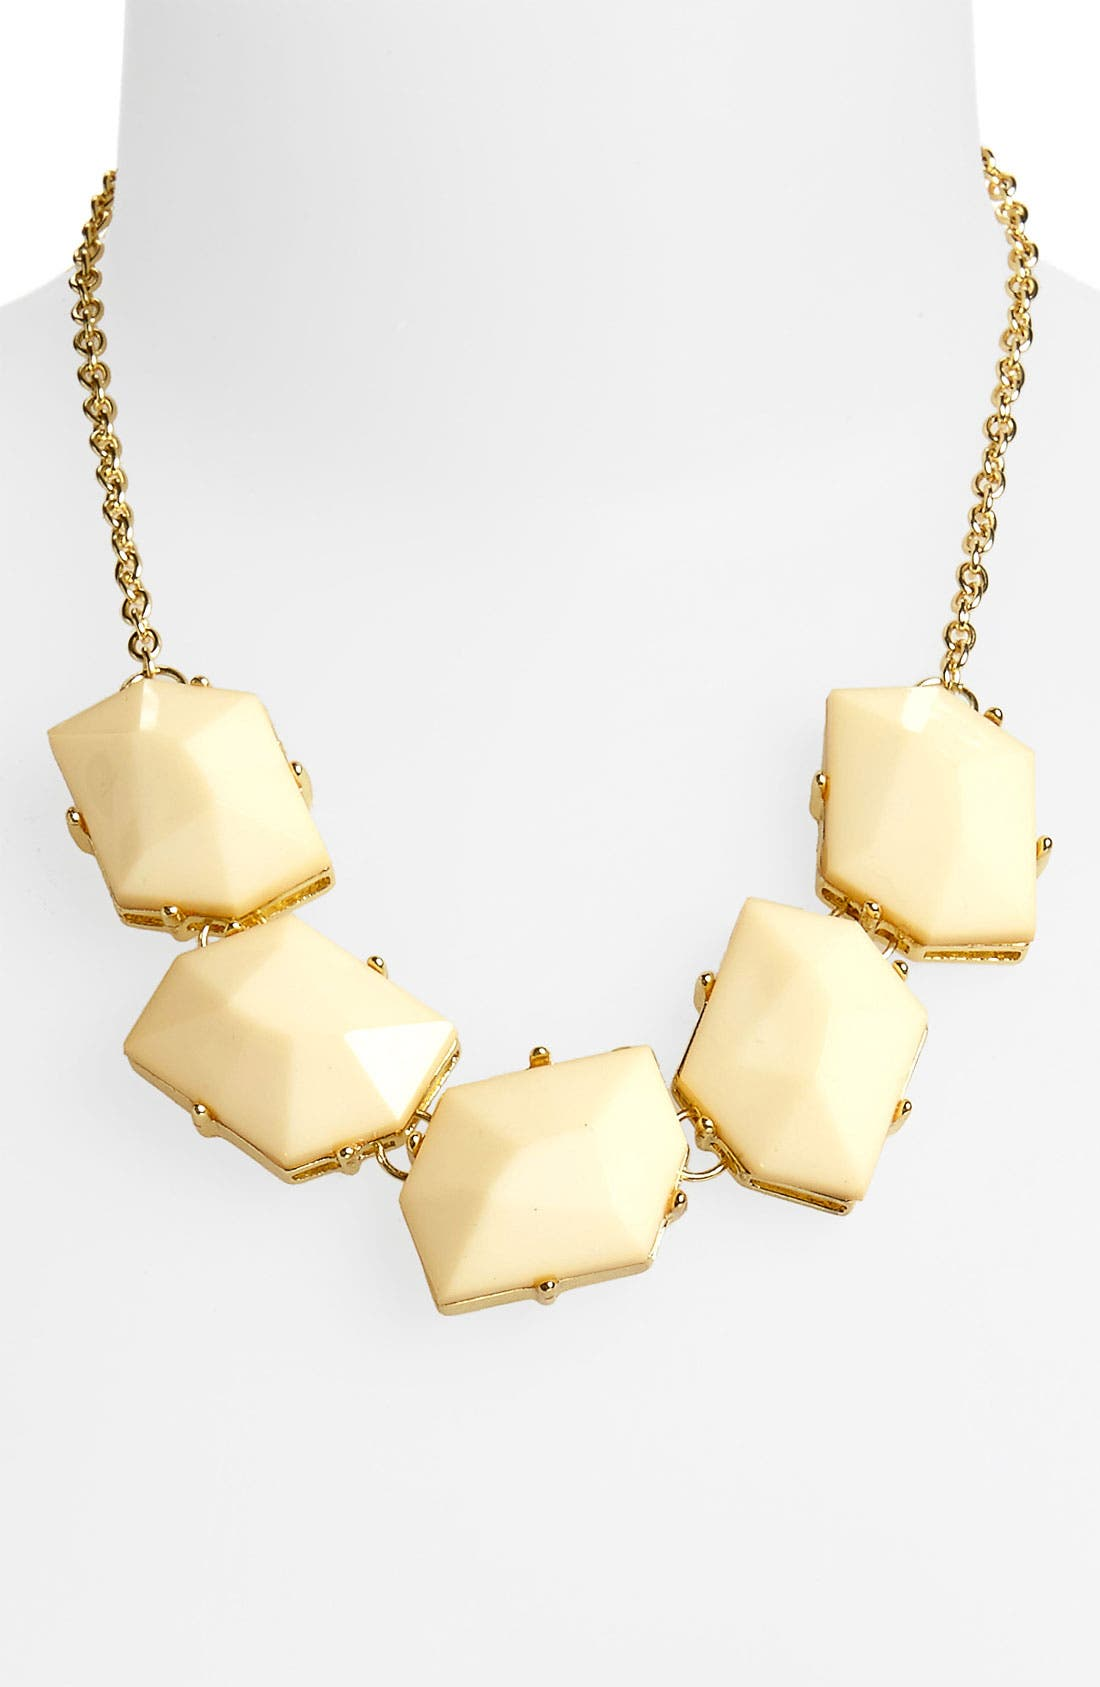 Main Image - Stephan & Co. Five Stone Necklace